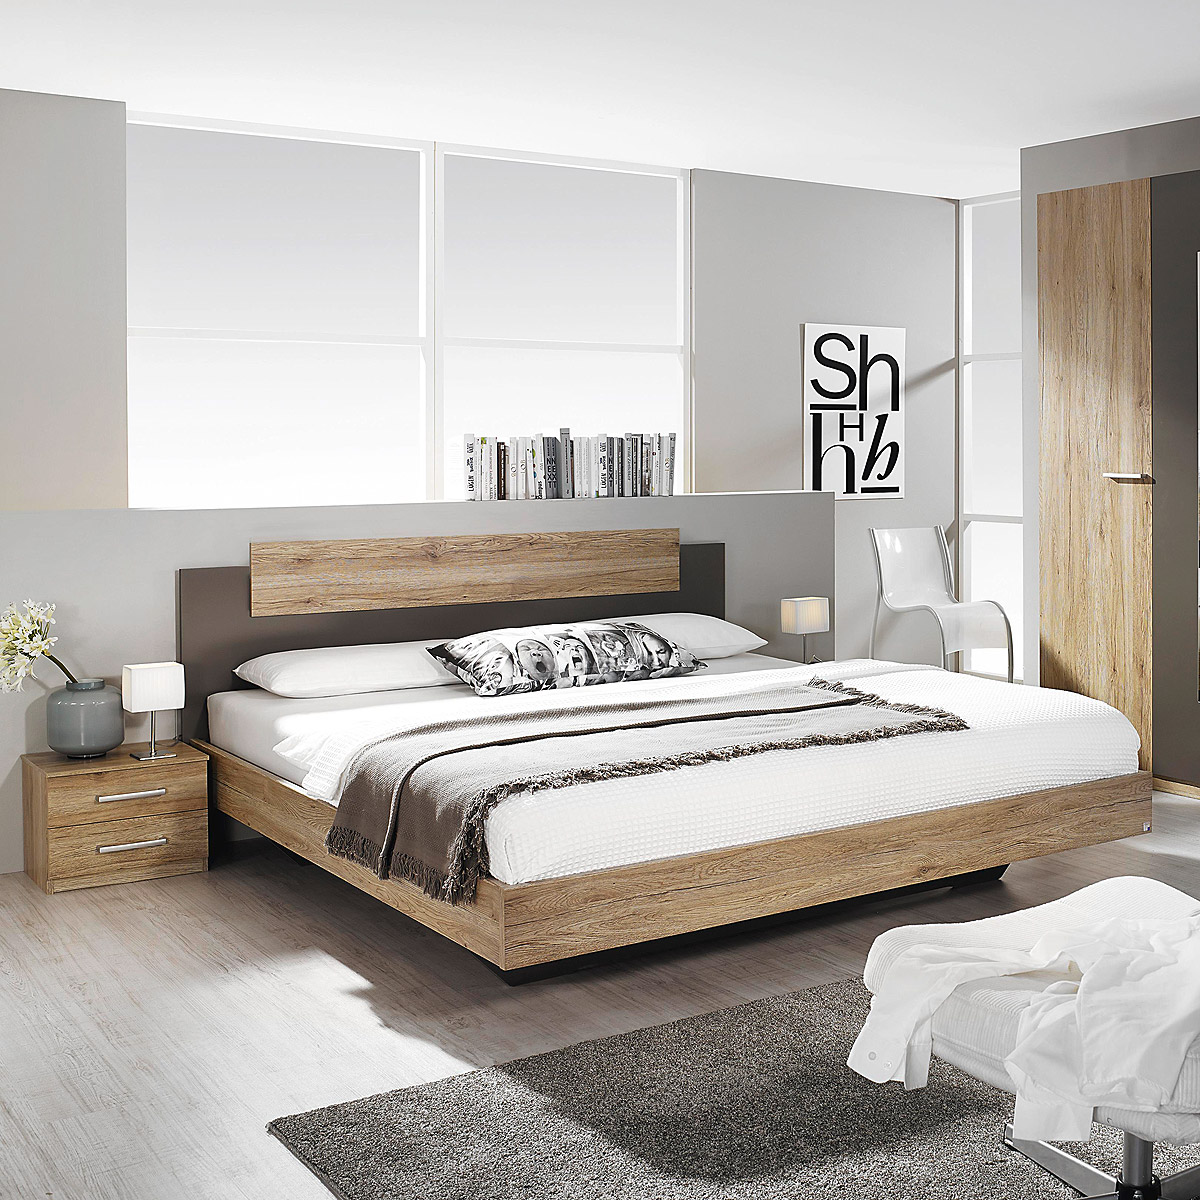 bettanlage borba bett nako eiche sanremo hell lavagrau 180x200 cm ebay. Black Bedroom Furniture Sets. Home Design Ideas